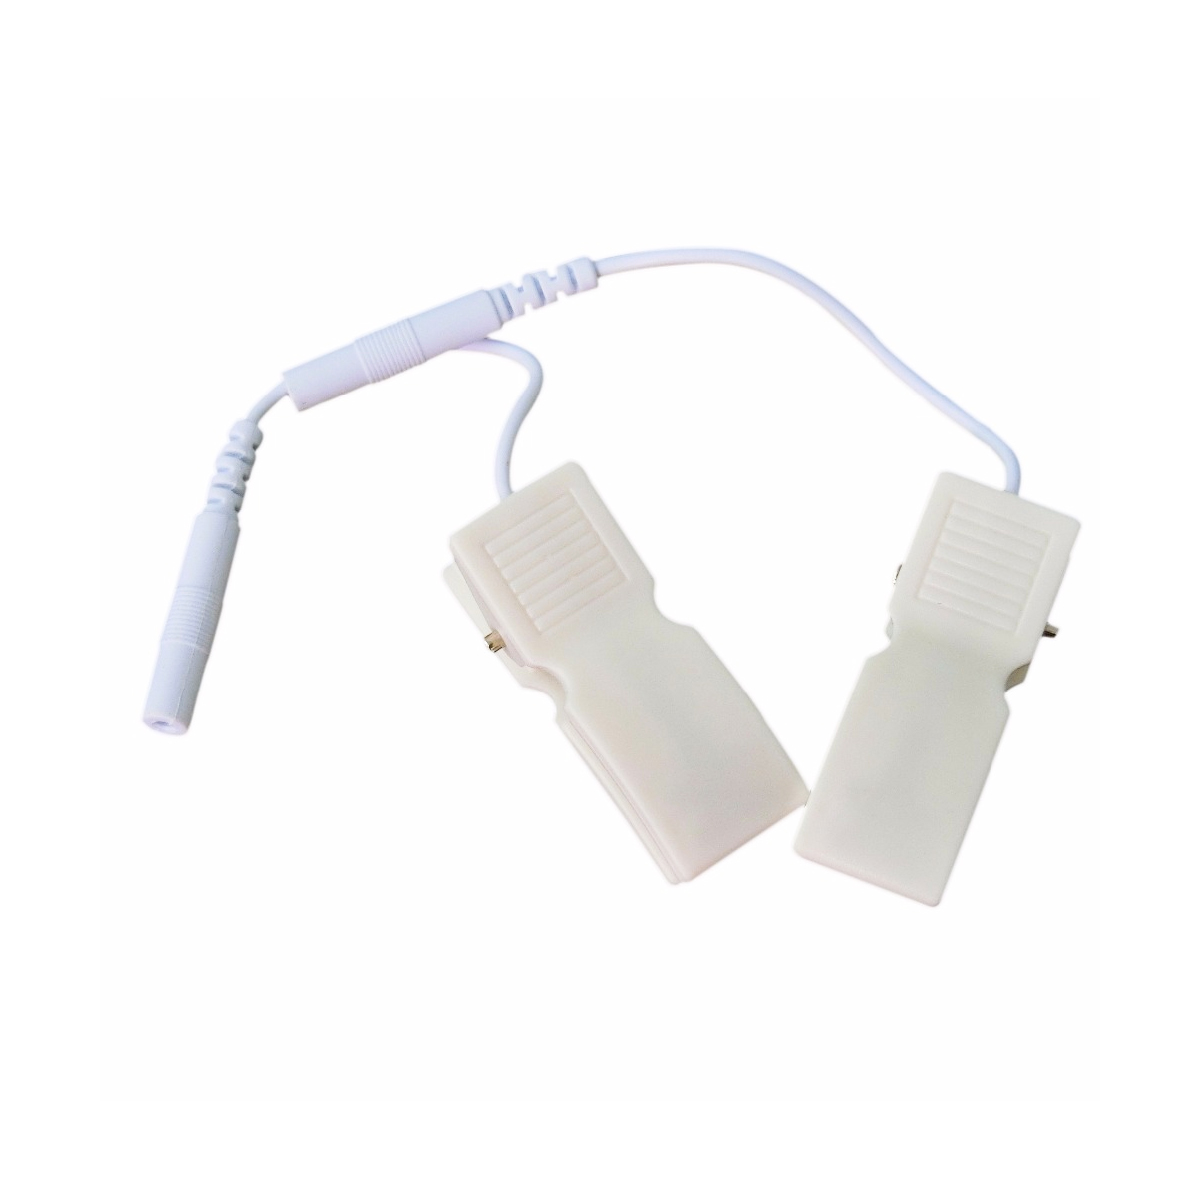 100Pairs/Pack Electrode TENS Massager Ear Clip Lead Wire Cable Pin 2.5mm Electrode Pad Connector Replacement Cables For TENS 100pairs lot 3 5mm snap tens electrode lead wires connecting cables plug 2 5mm use for connect tens ems massager machine device